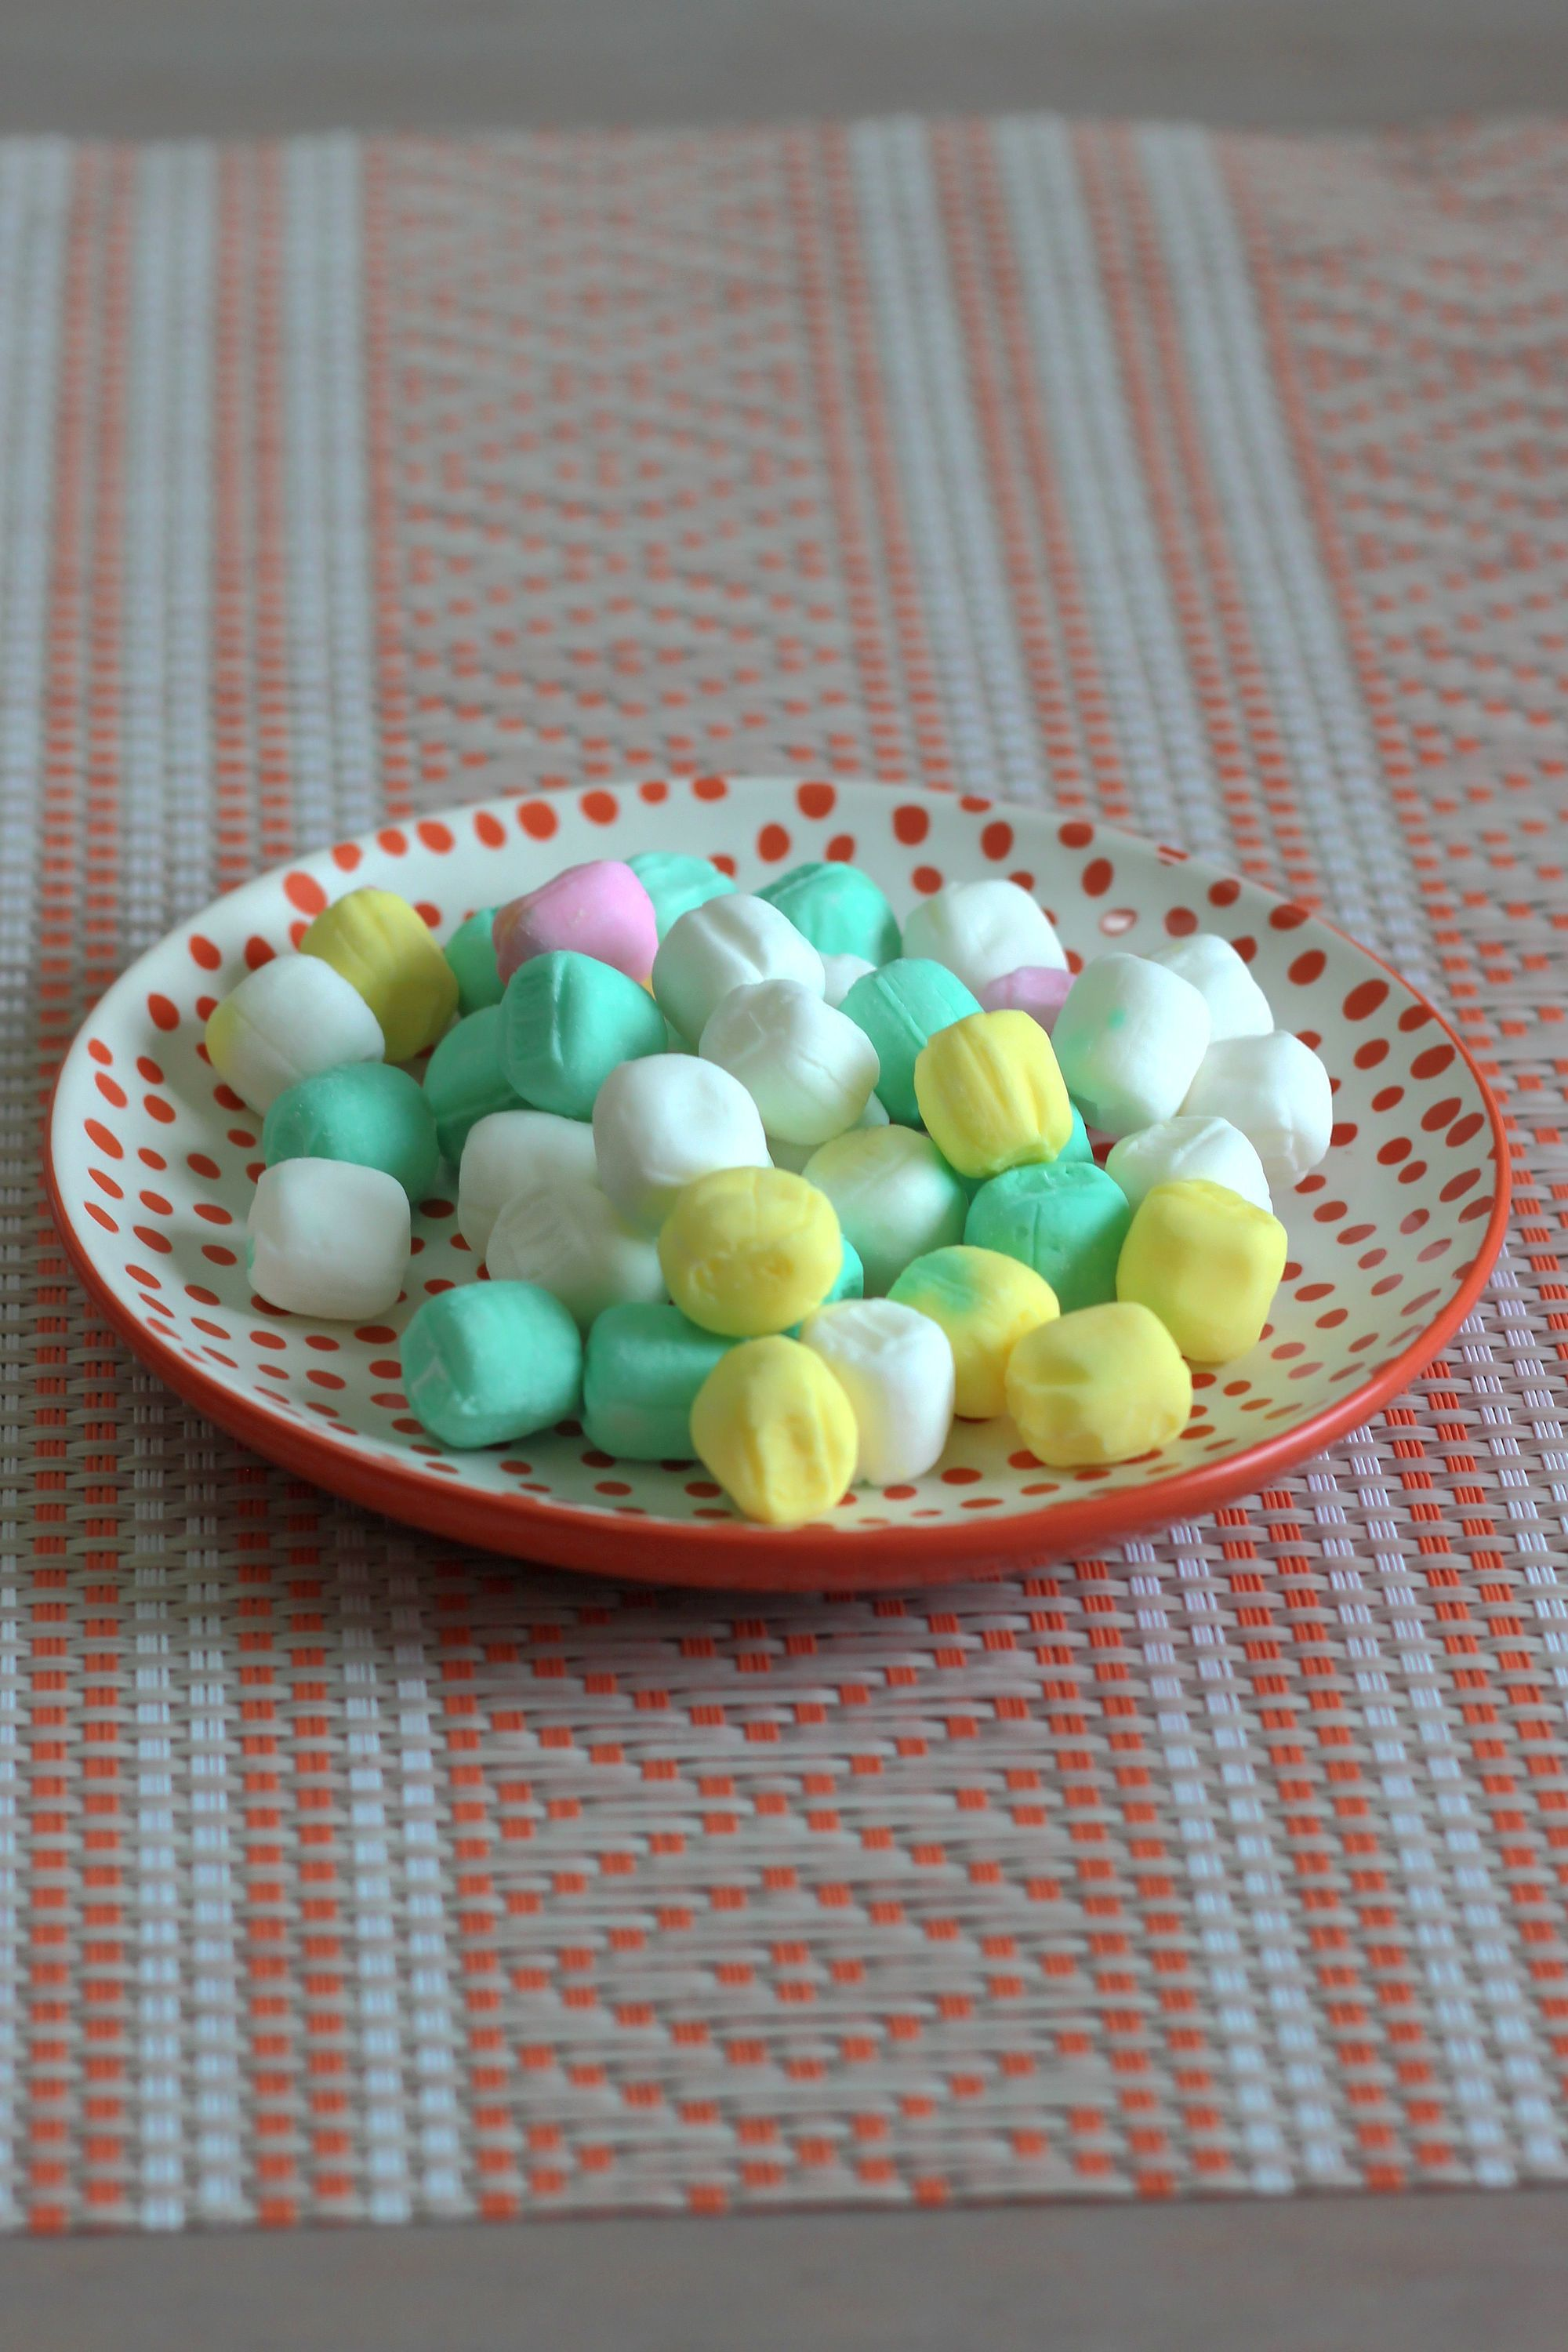 Bowl of butter mint candies on table